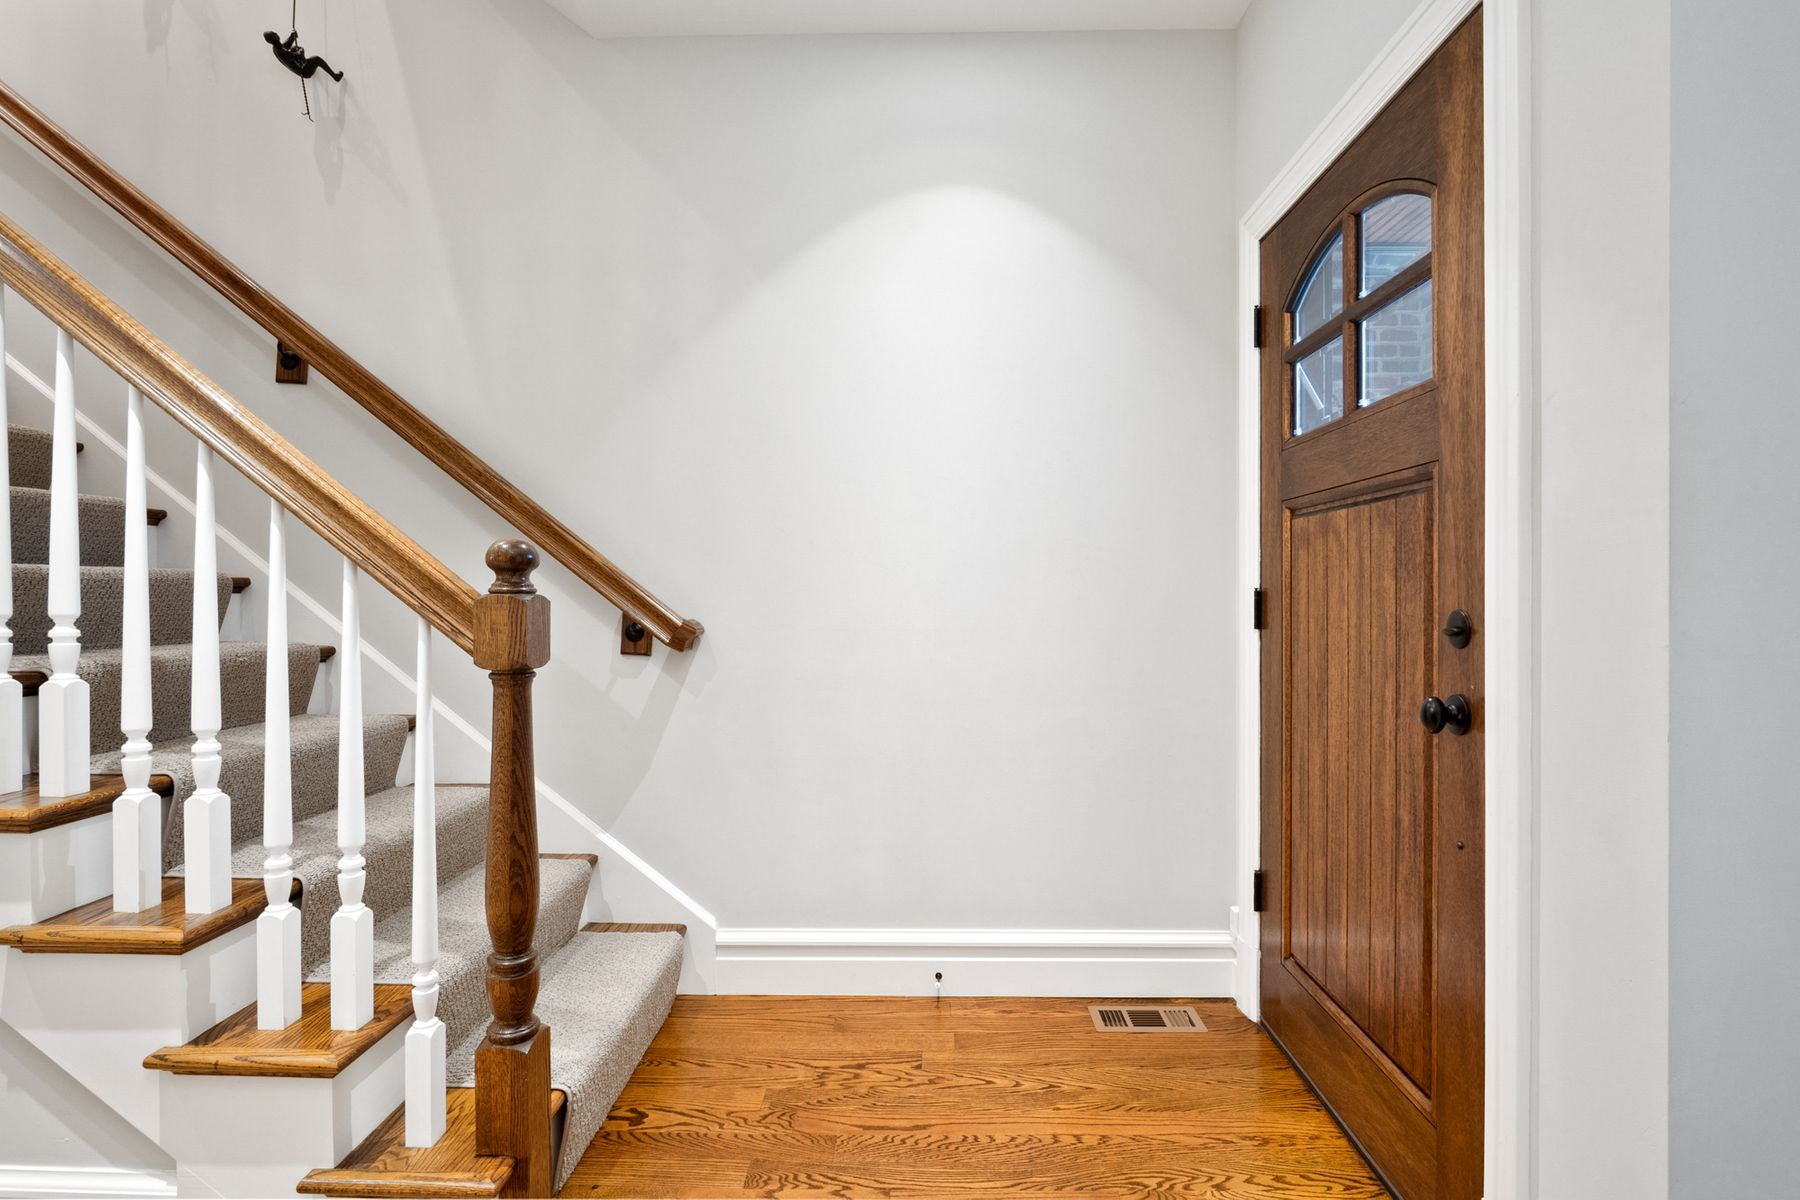 Additional photo for property listing at Incredible Period Restoration Townhome 7430 Delmar Blvd University City, Missouri 63130 United States